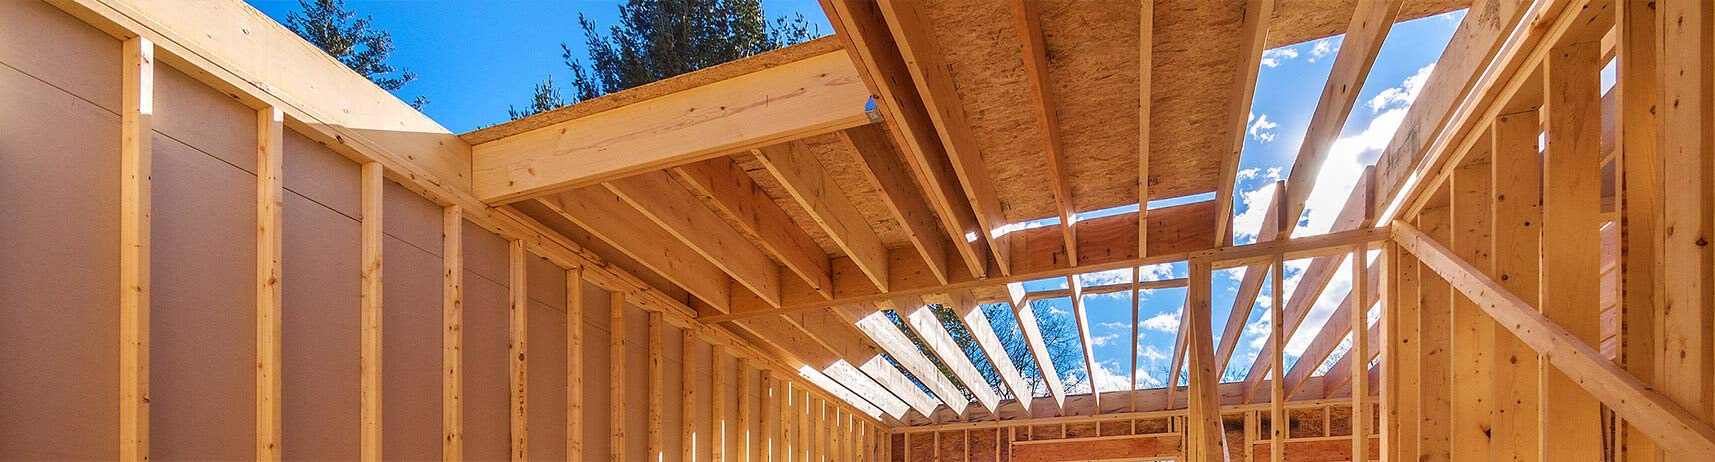 Wheaton General Contractor, Home Remodeling Contractor and Home Additions